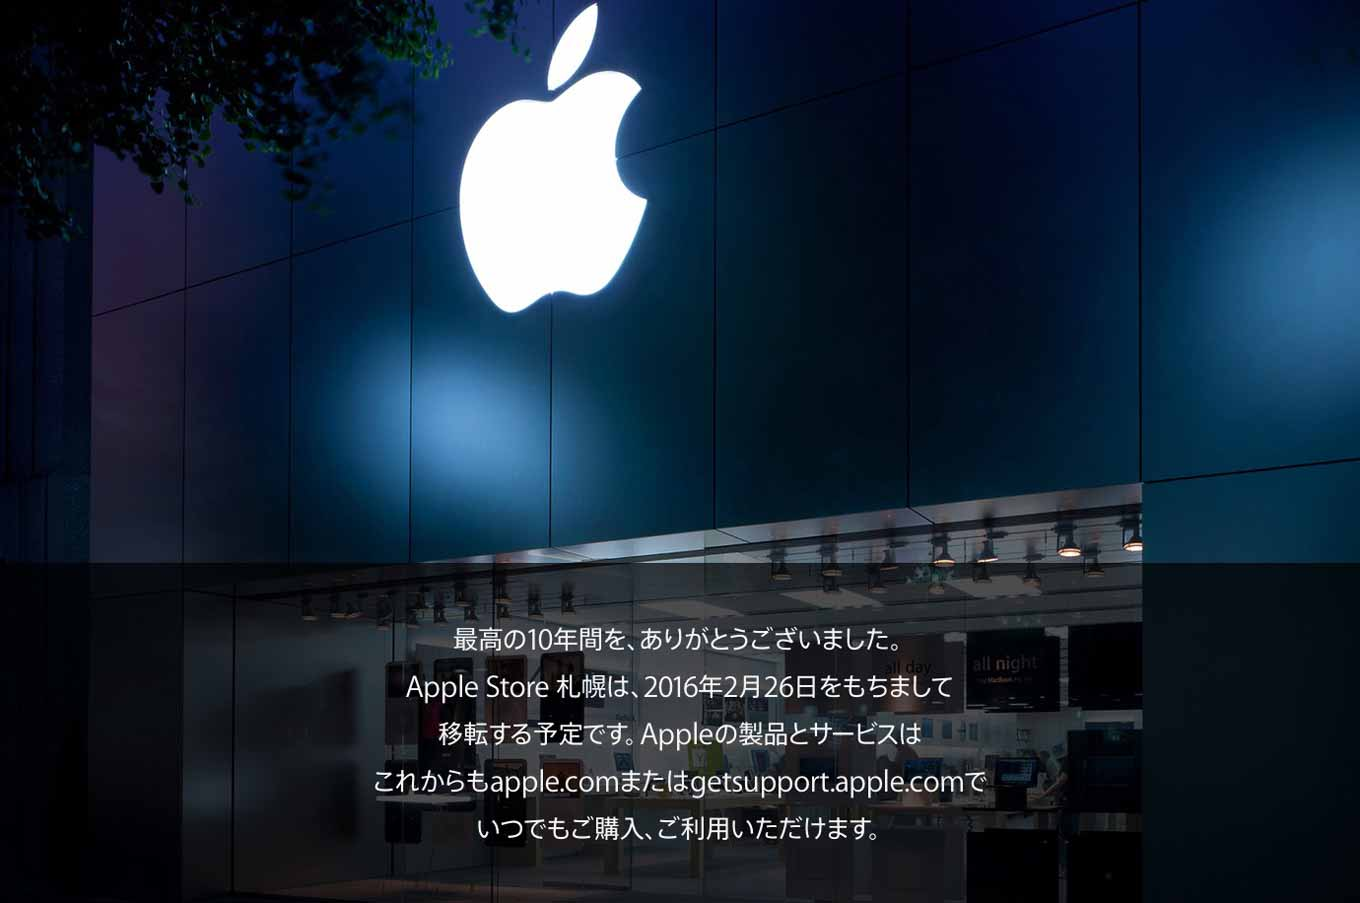 Applestoresapporo